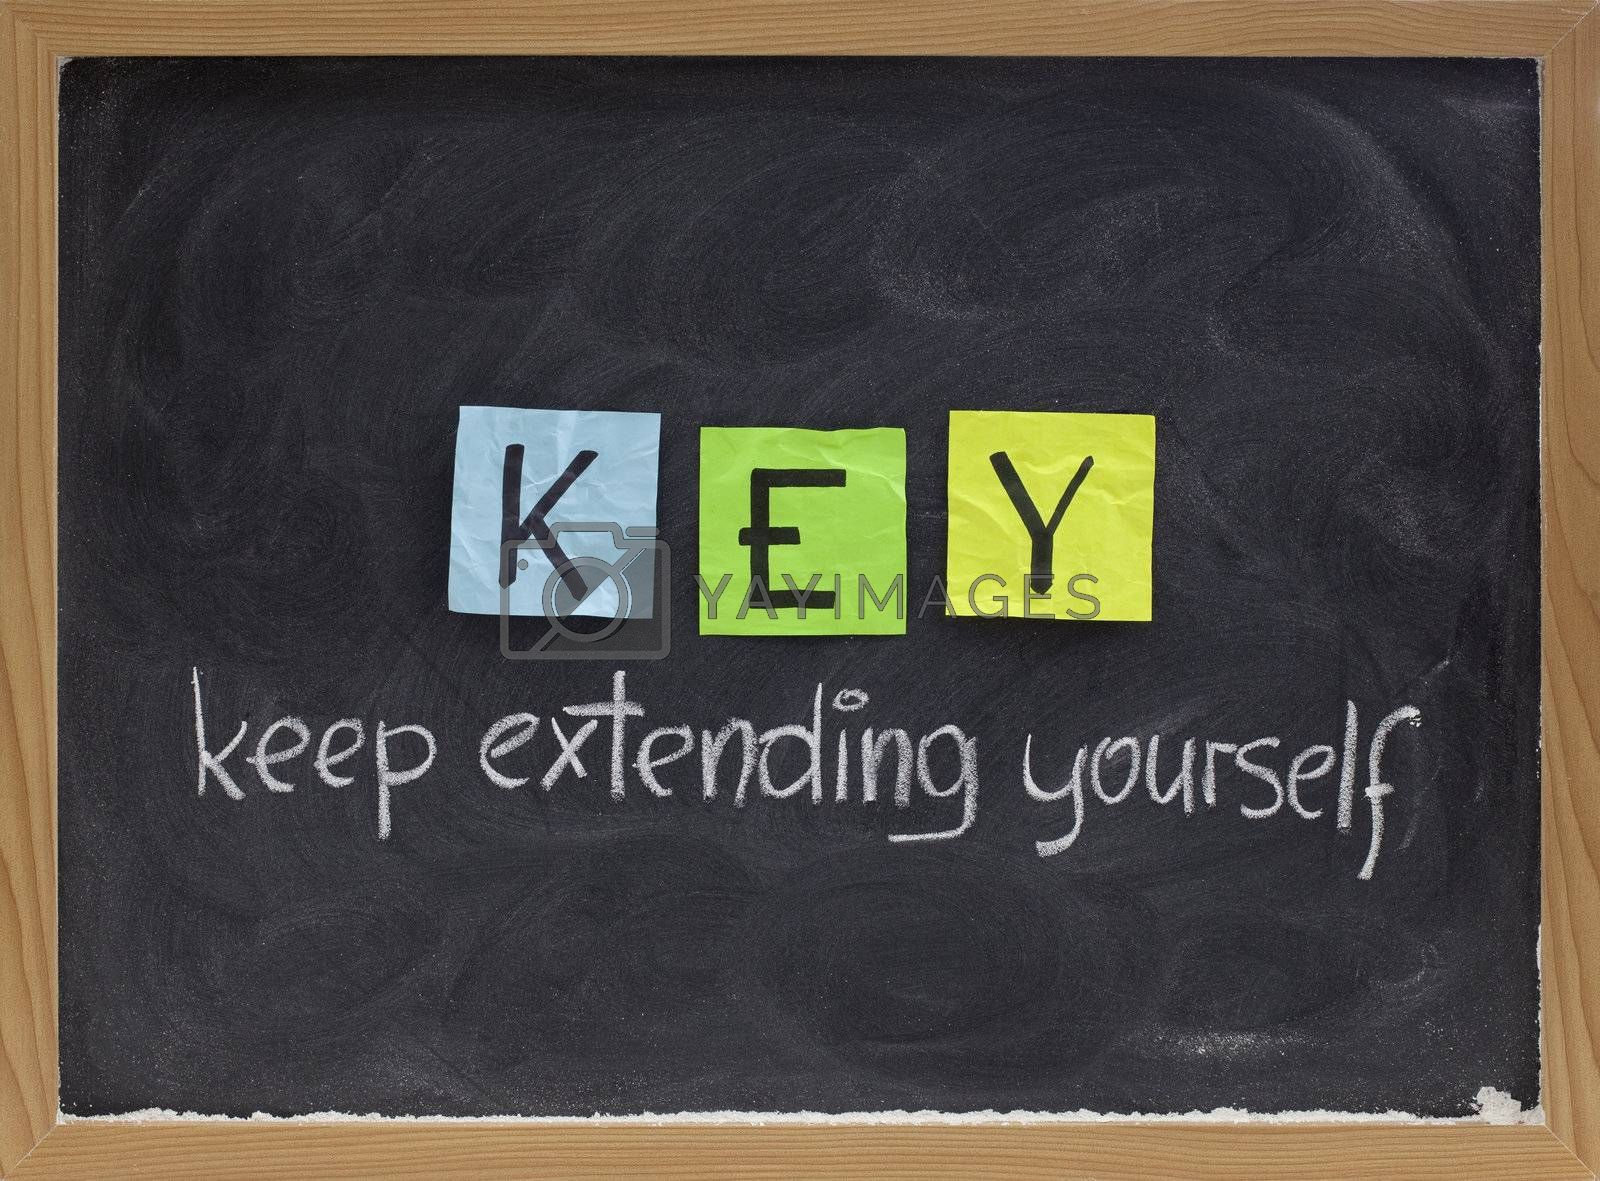 keep extending yourself - motivation acronym by PixelsAway